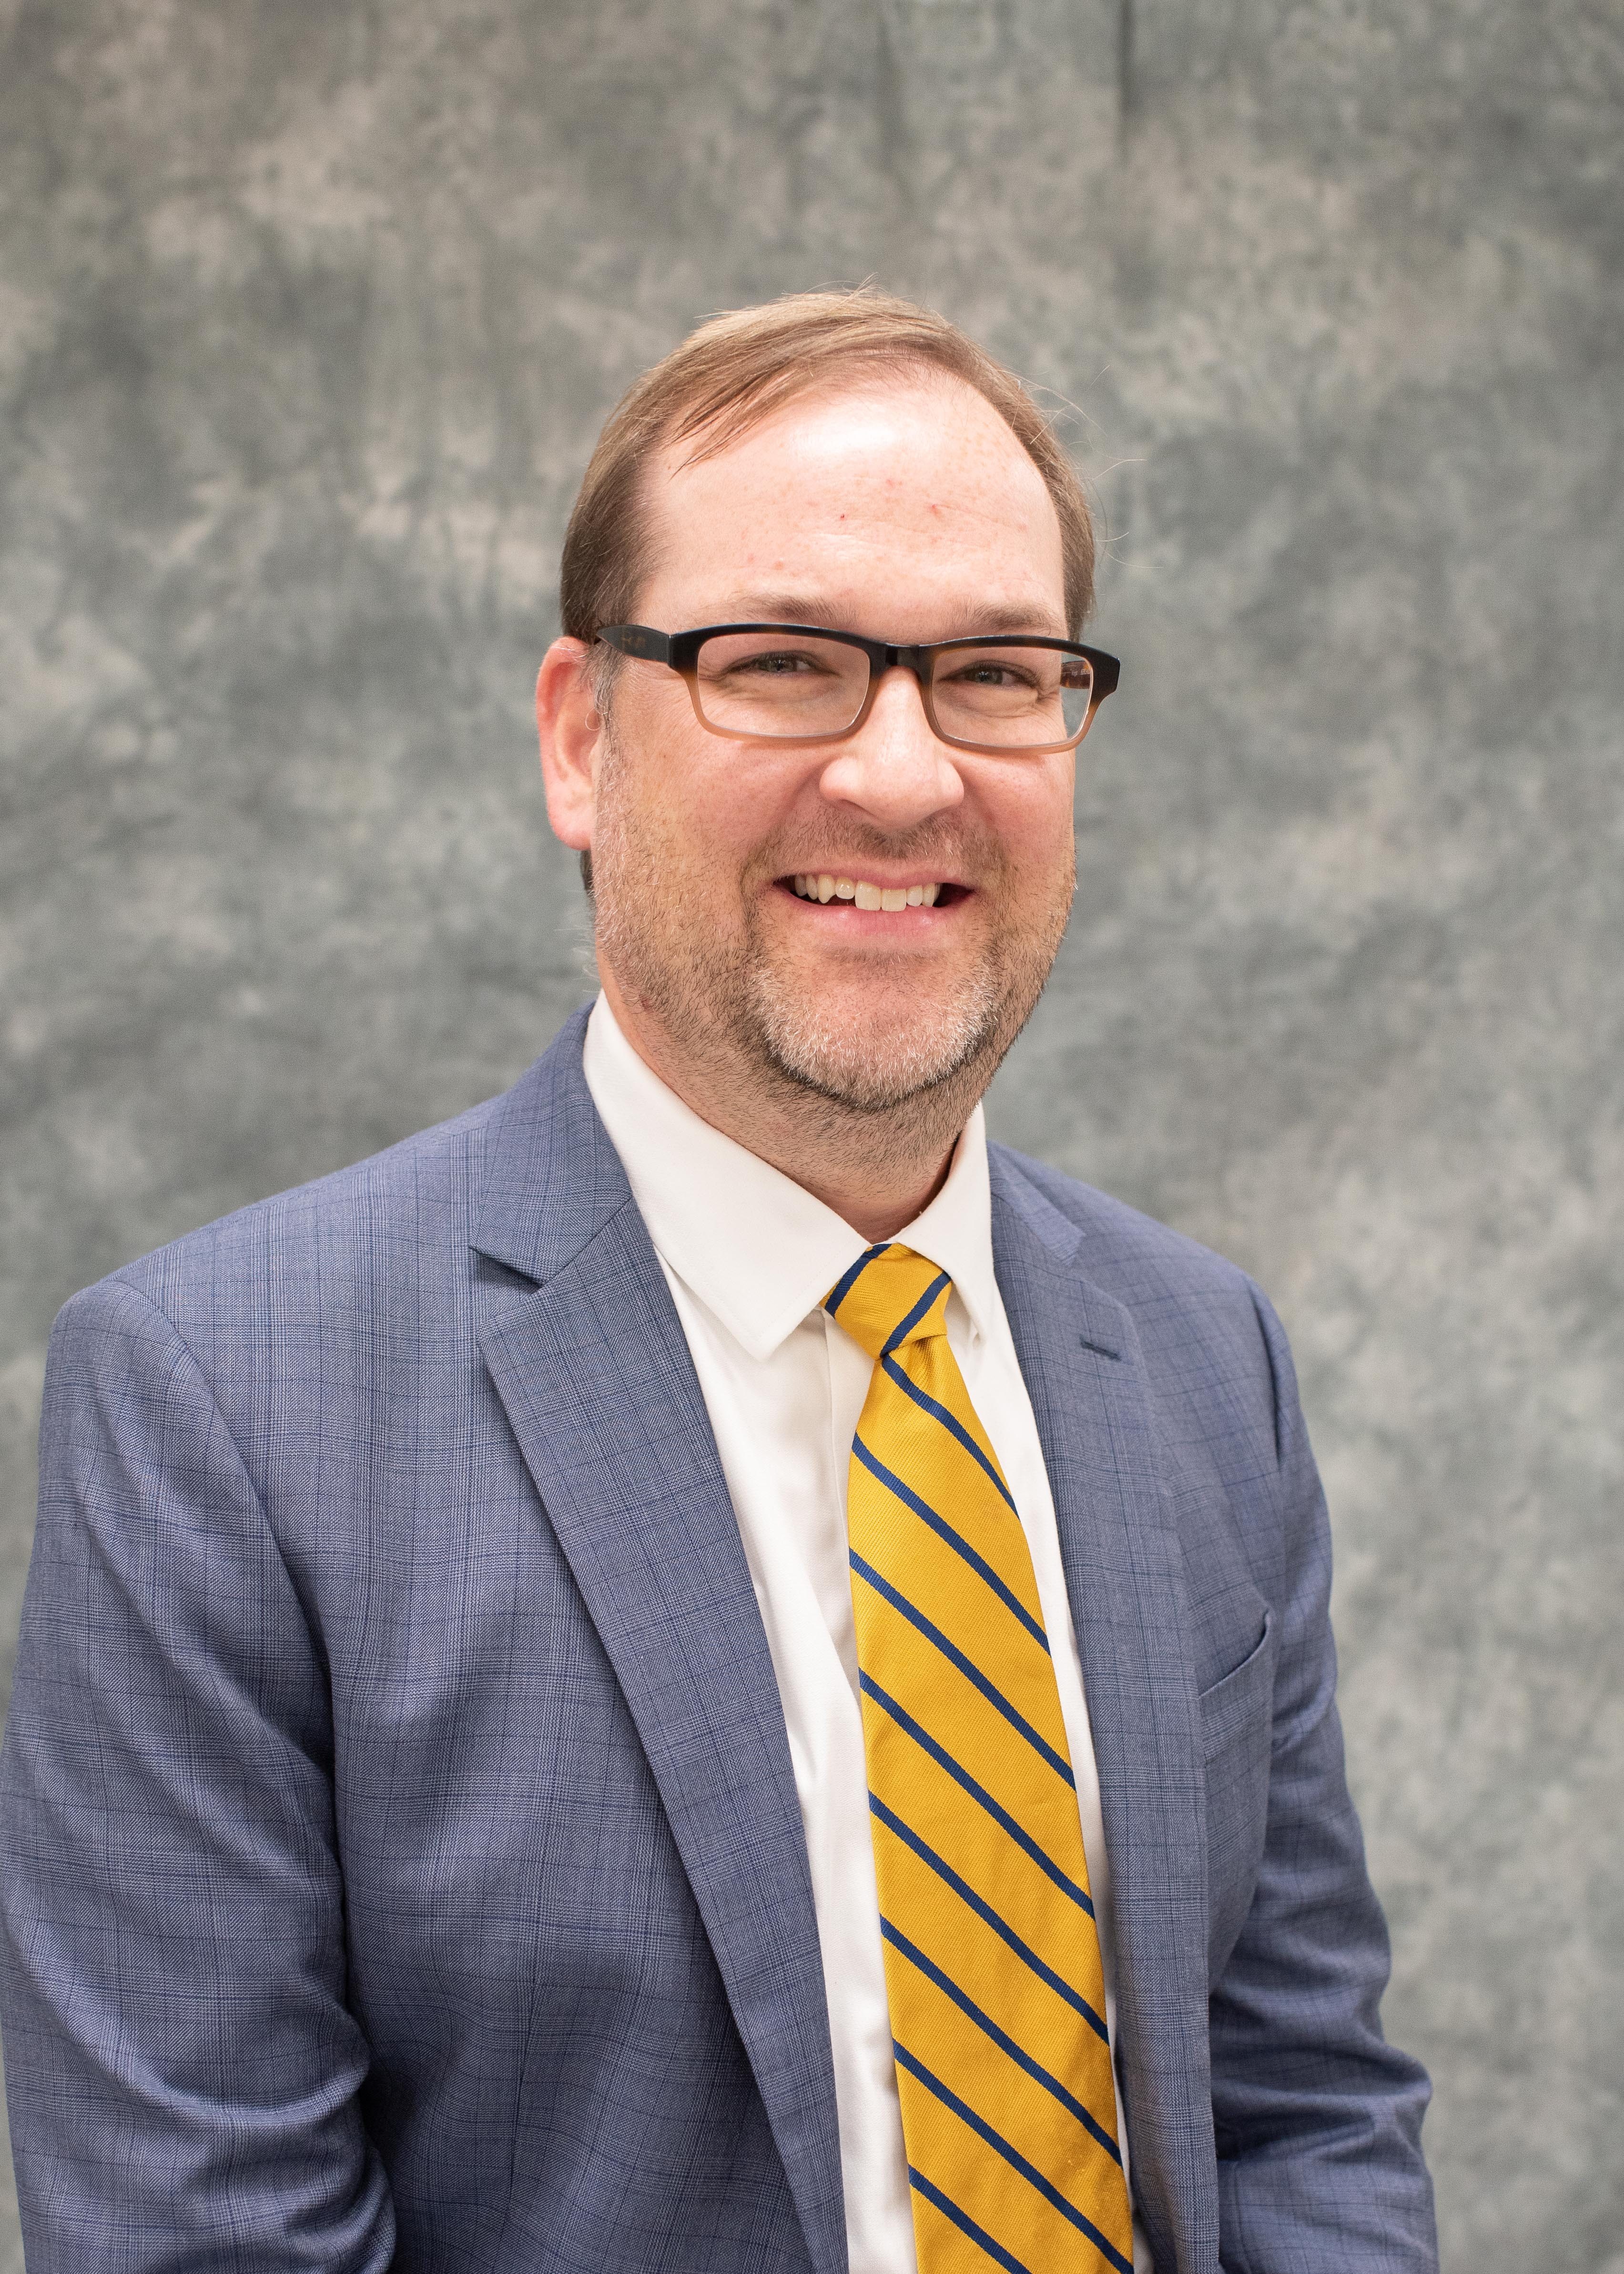 A photo of Justin Gibson, Director of Special Programs.